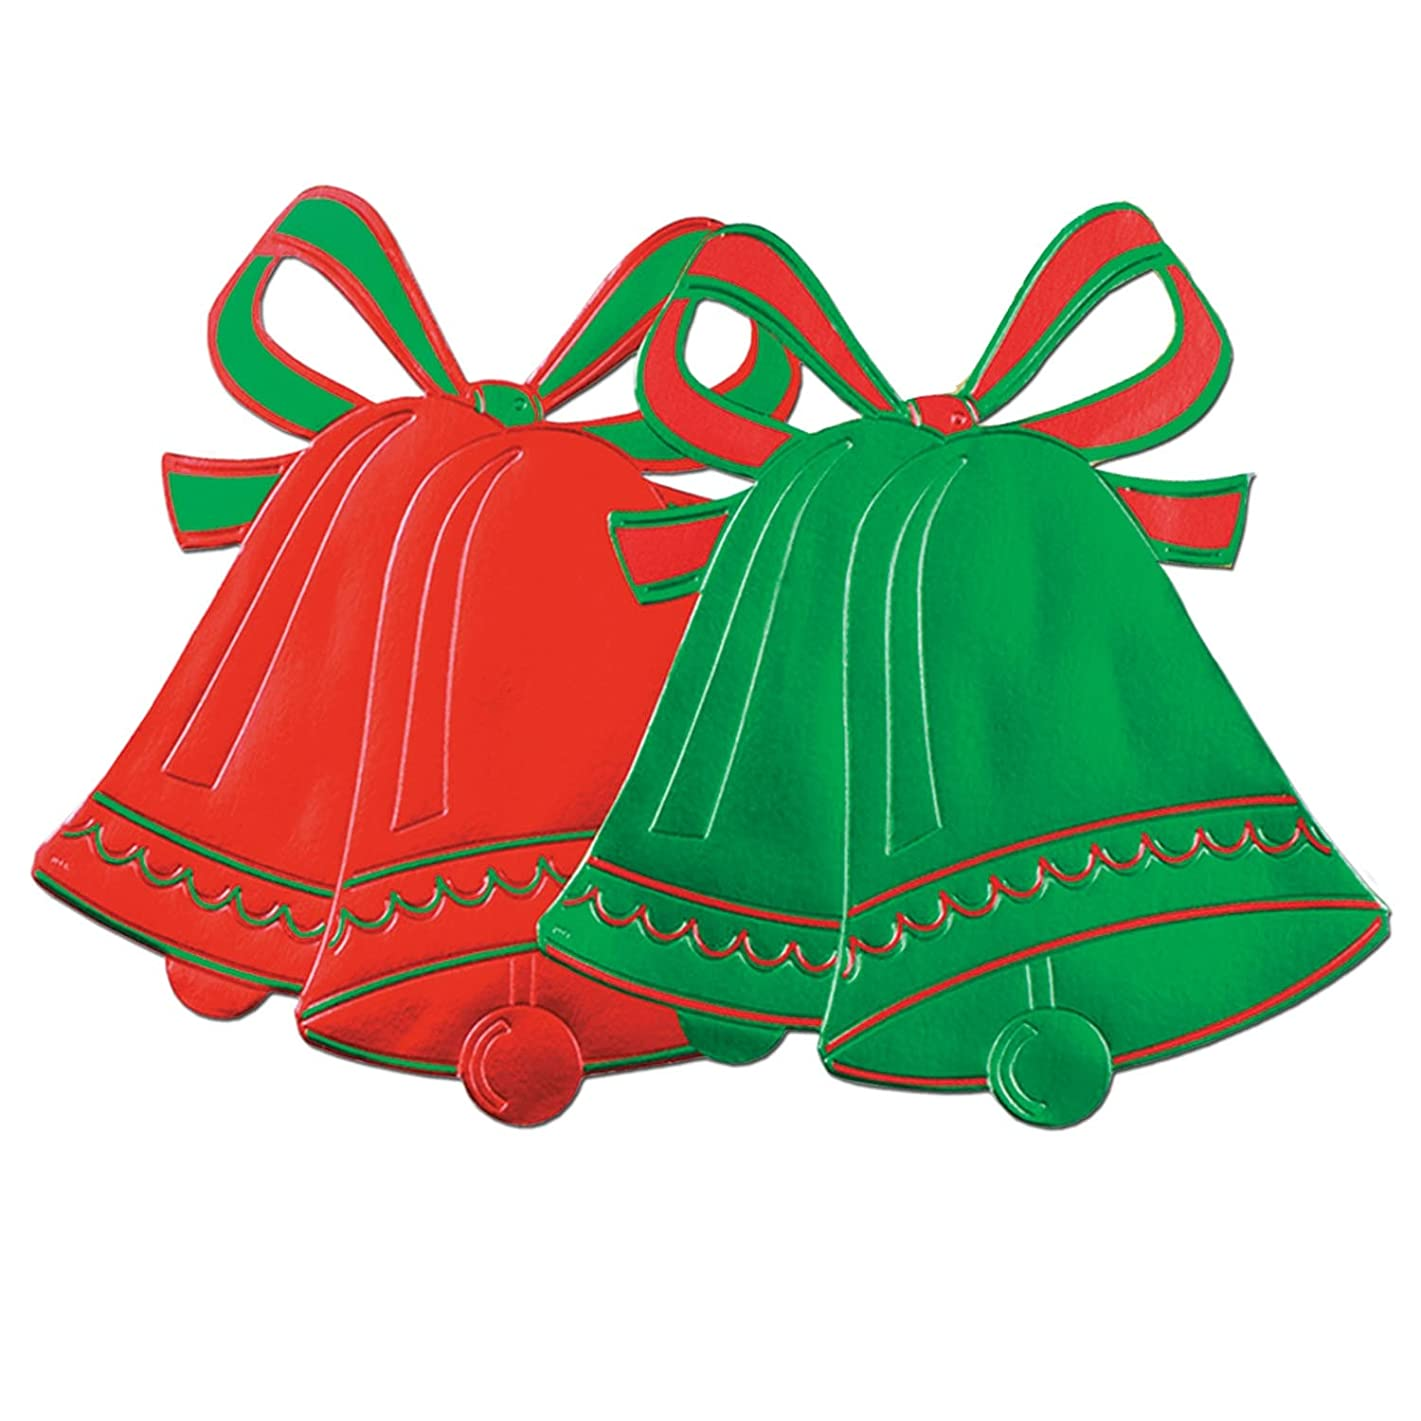 Beistle 22418 24-Piece Foil Christmas Bell Silhouettes, 16-1/2-Inch